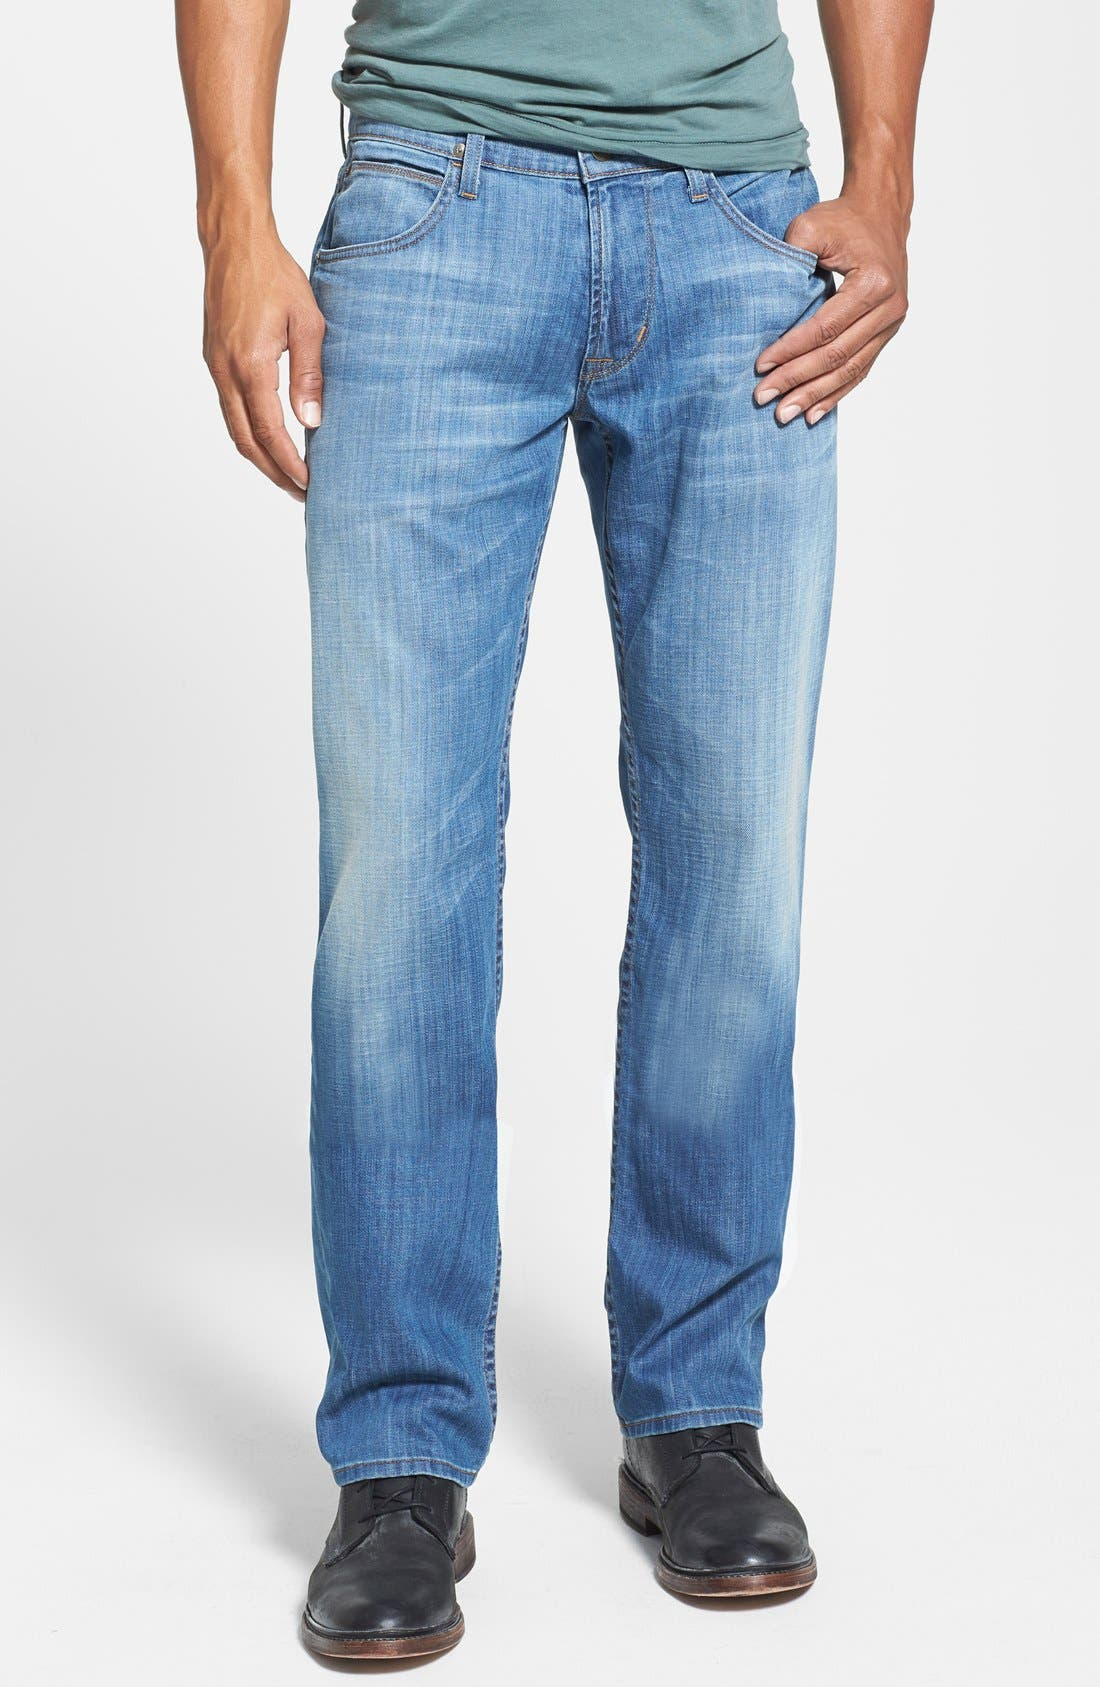 Alternate Image 1 Selected - Hudson Jeans 'Byron' Straight Leg Jeans (Comrade)